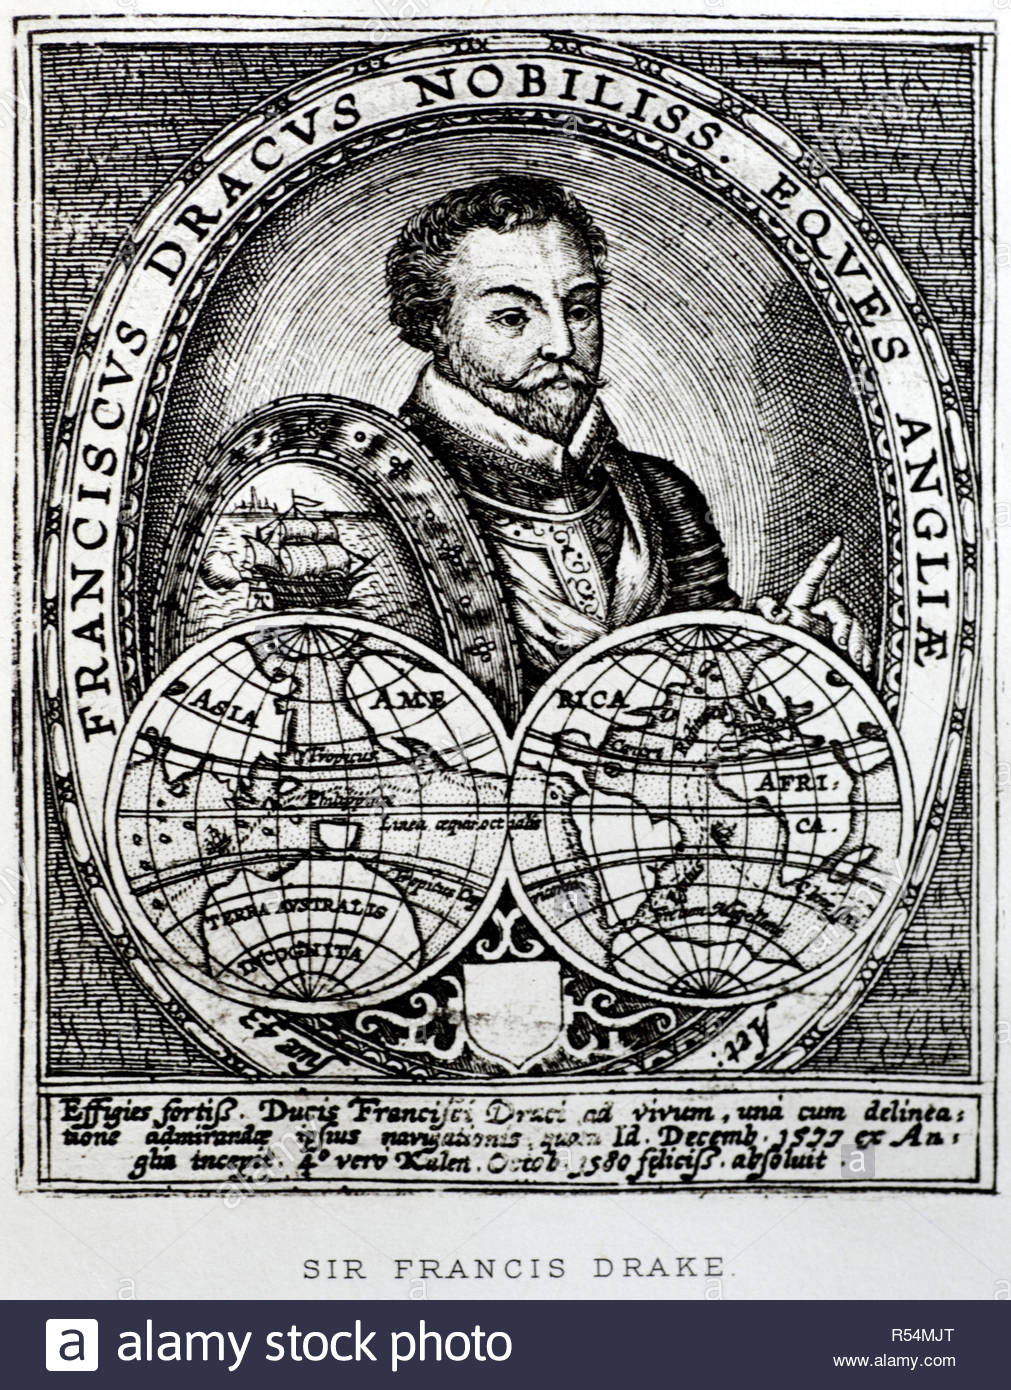 Sir Francis Drake portrait, 1540 – 1596,  was an English sea captain of the Elizabethan era, illustration from c1900 - Stock Image